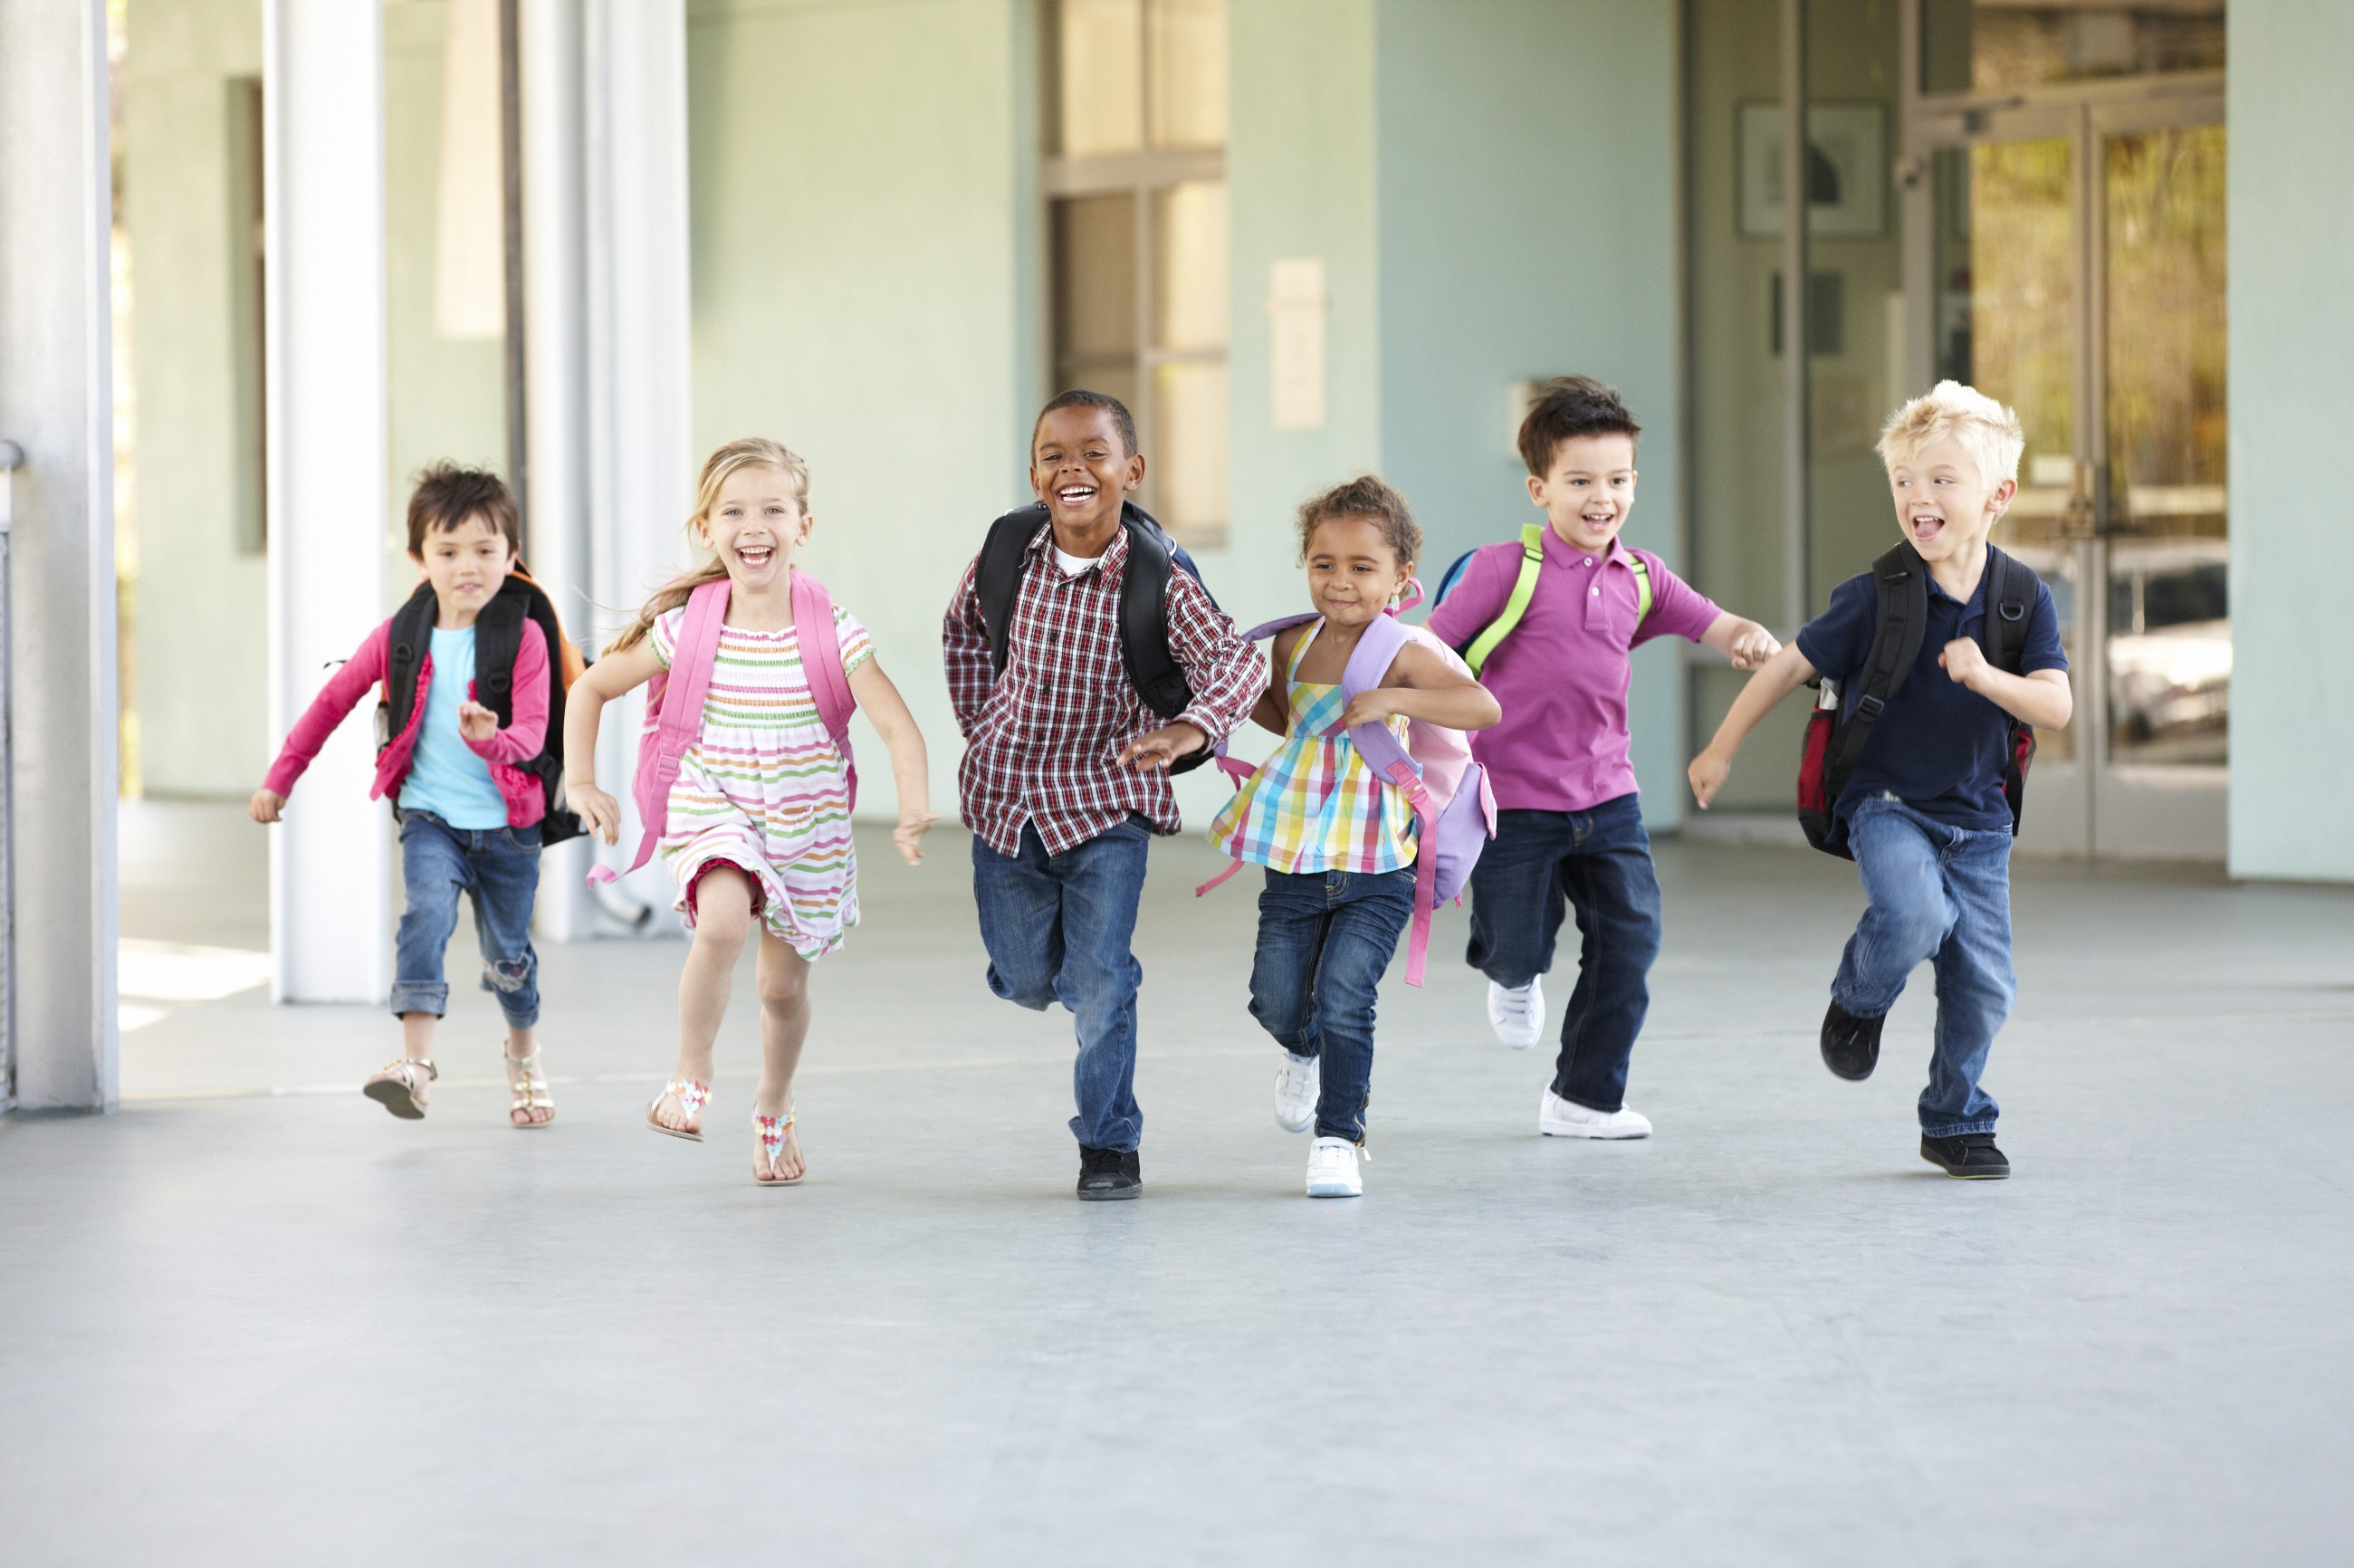 Our Guide To Finding The Perfect School For Your Child